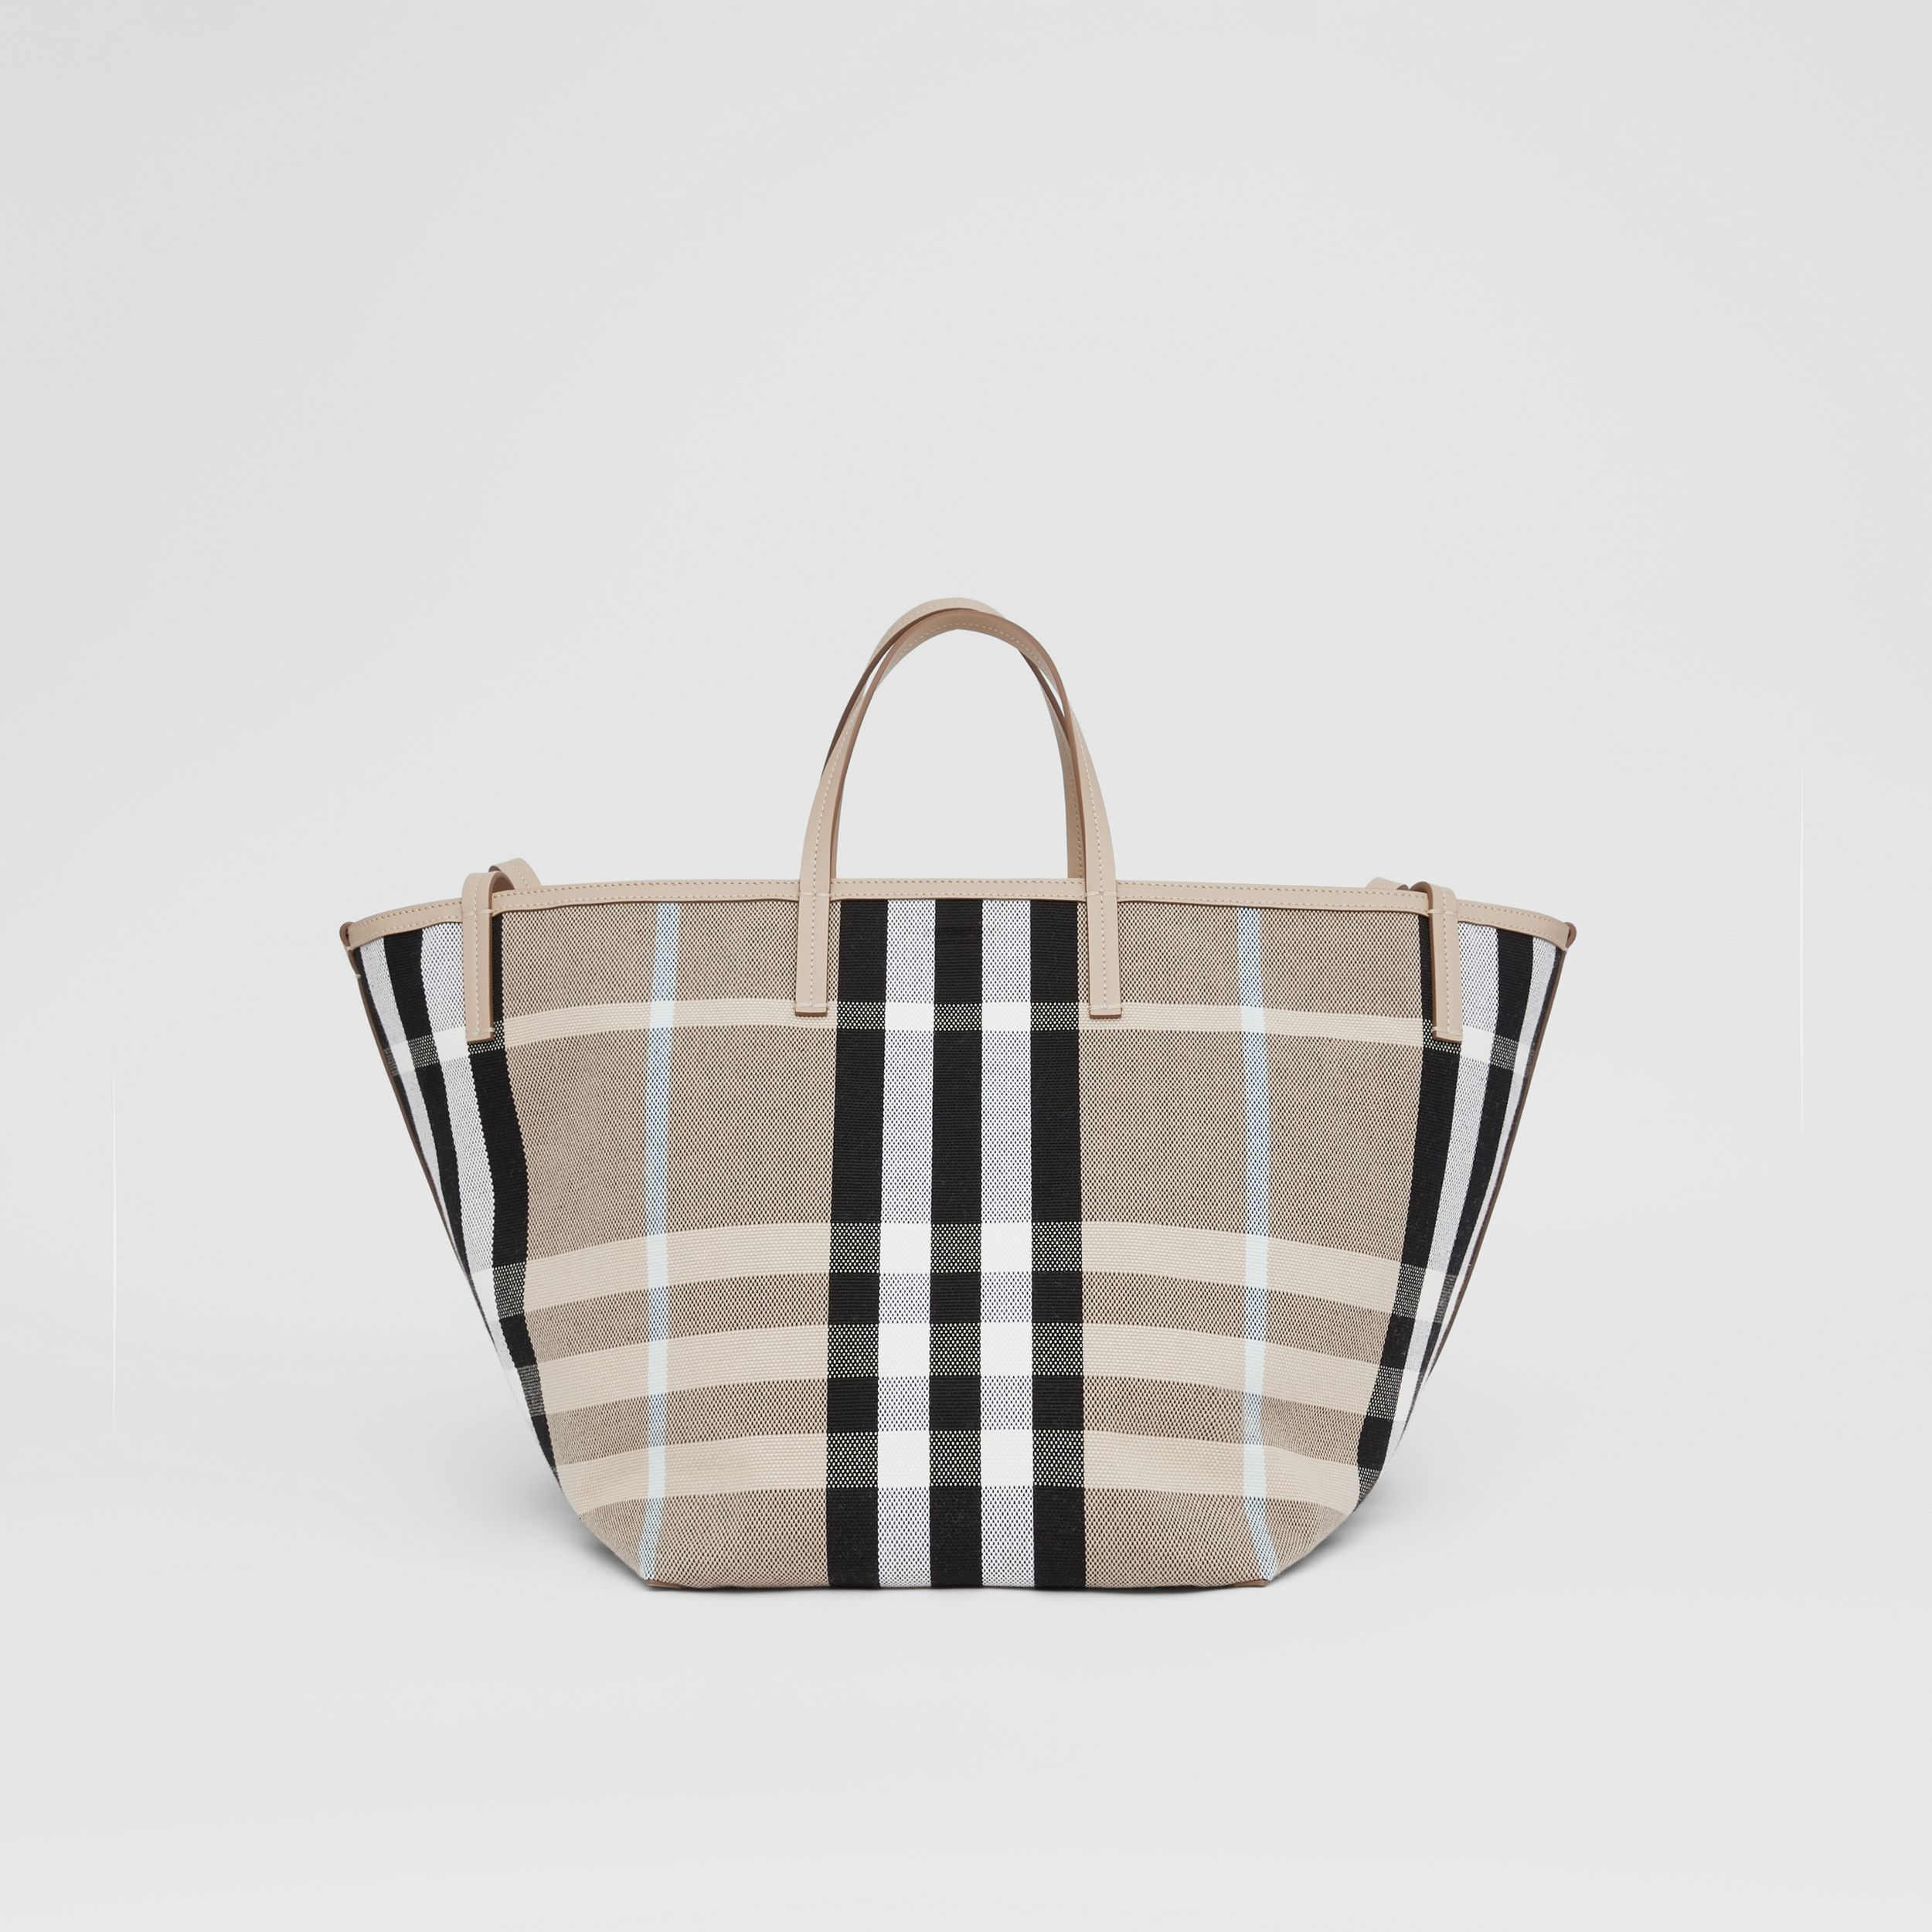 Medium Check Canvas Beach Tote in Dusty Sand/soft Fawn - Women | Burberry United States - 1